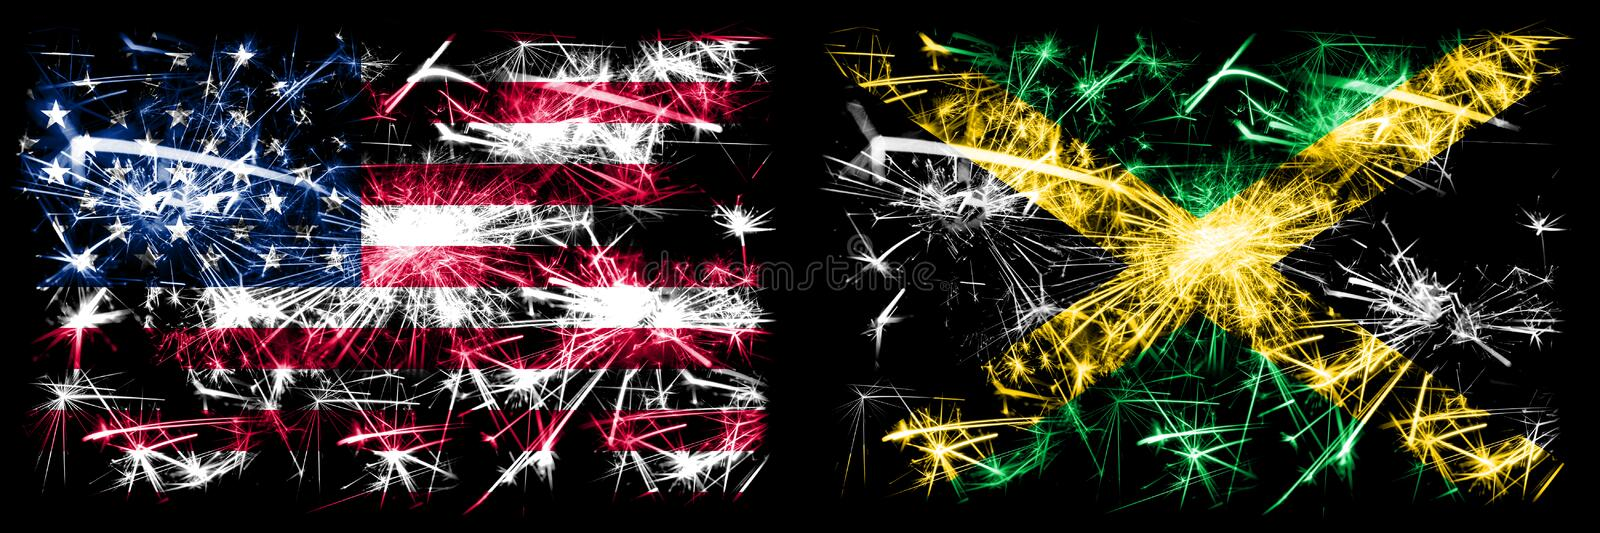 United States of America, USA vs Jamaica, Jamaican New Year celebration sparkling fireworks flags concept background. Combination. Of two abstract states flags vector illustration